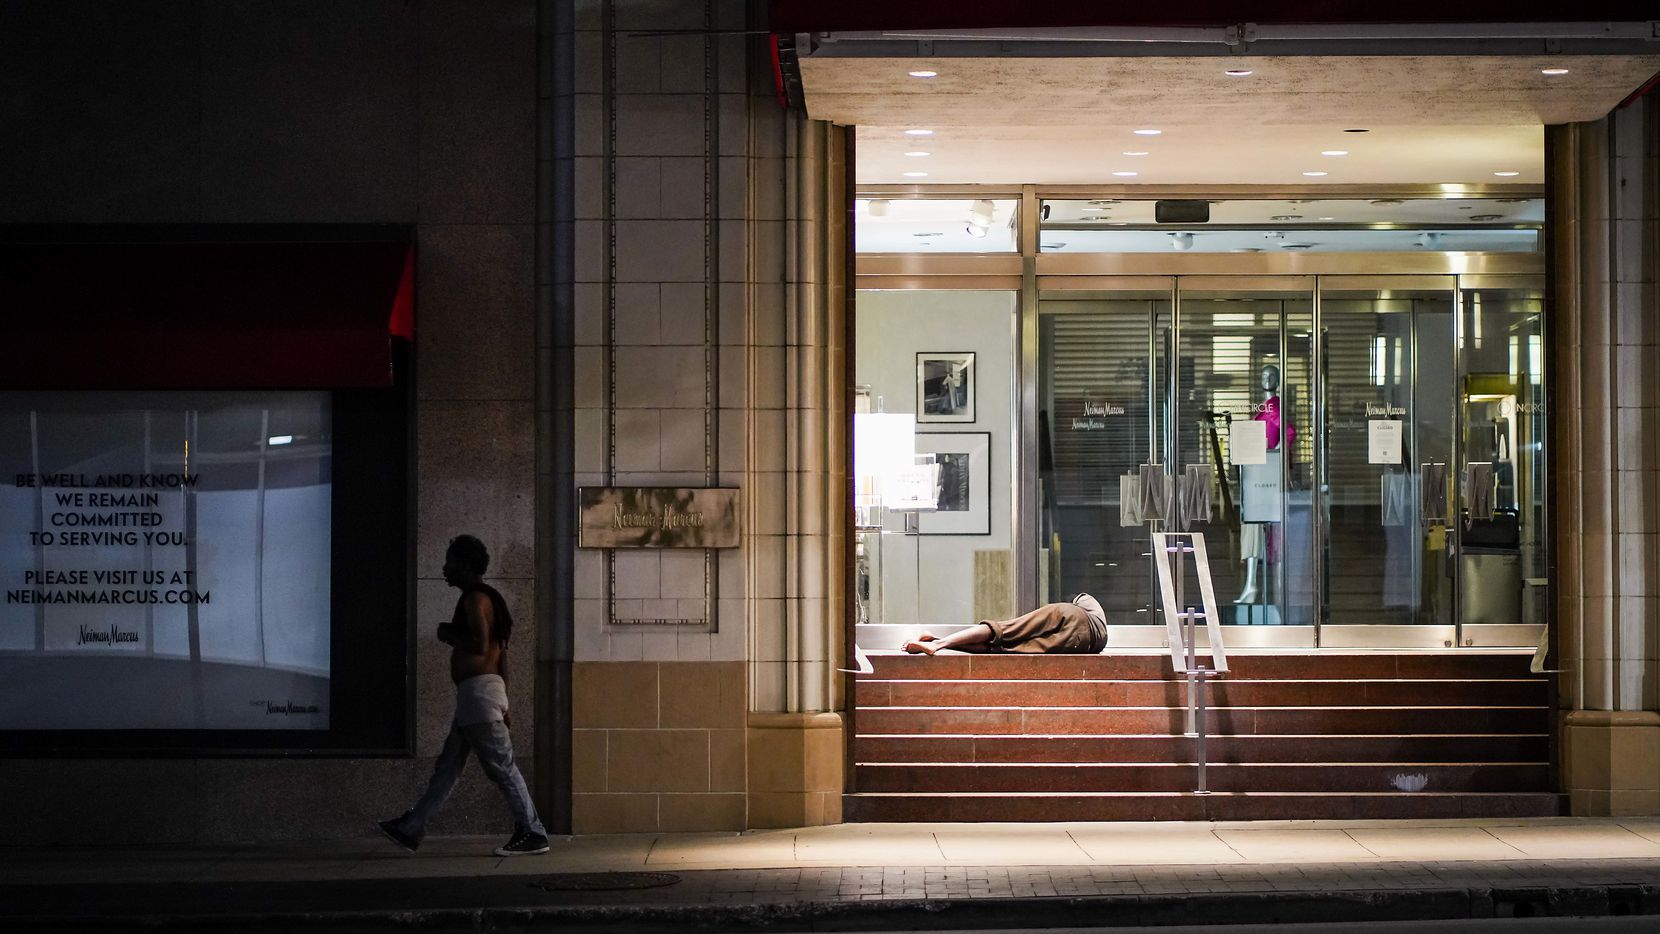 A homeless man sleeps in the doorway of the Neiman Marcus flagship store in downtown Dallas on Thursday, May 7, 2020.